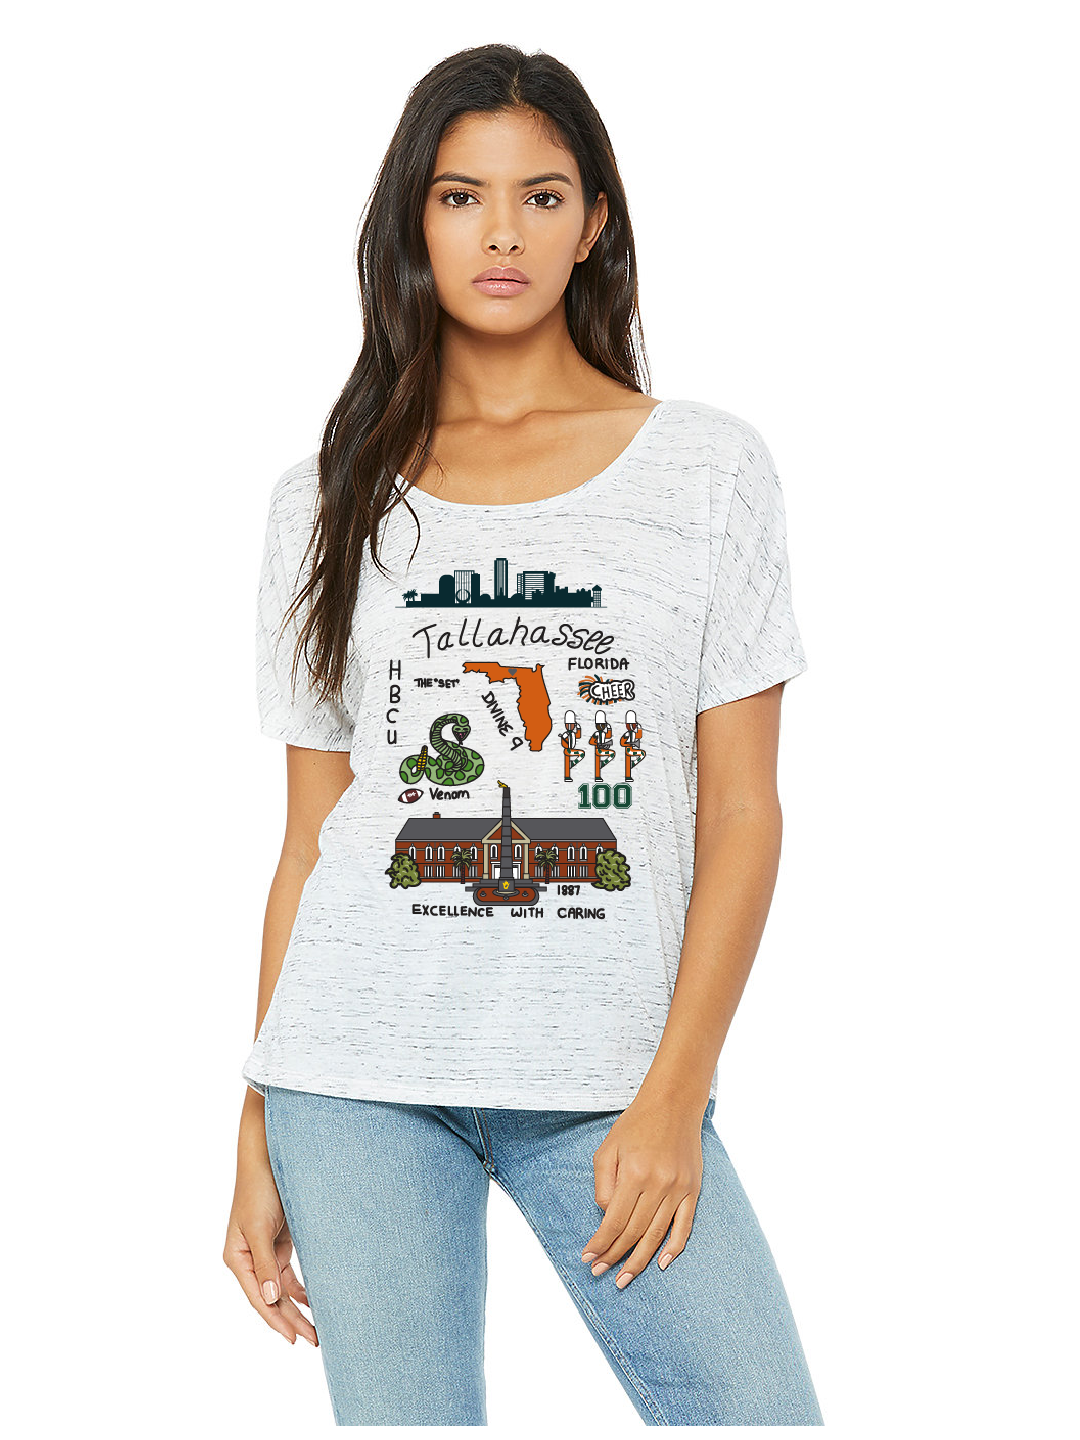 Tallahassee Print (A&M) - Women's Slouchy Tee